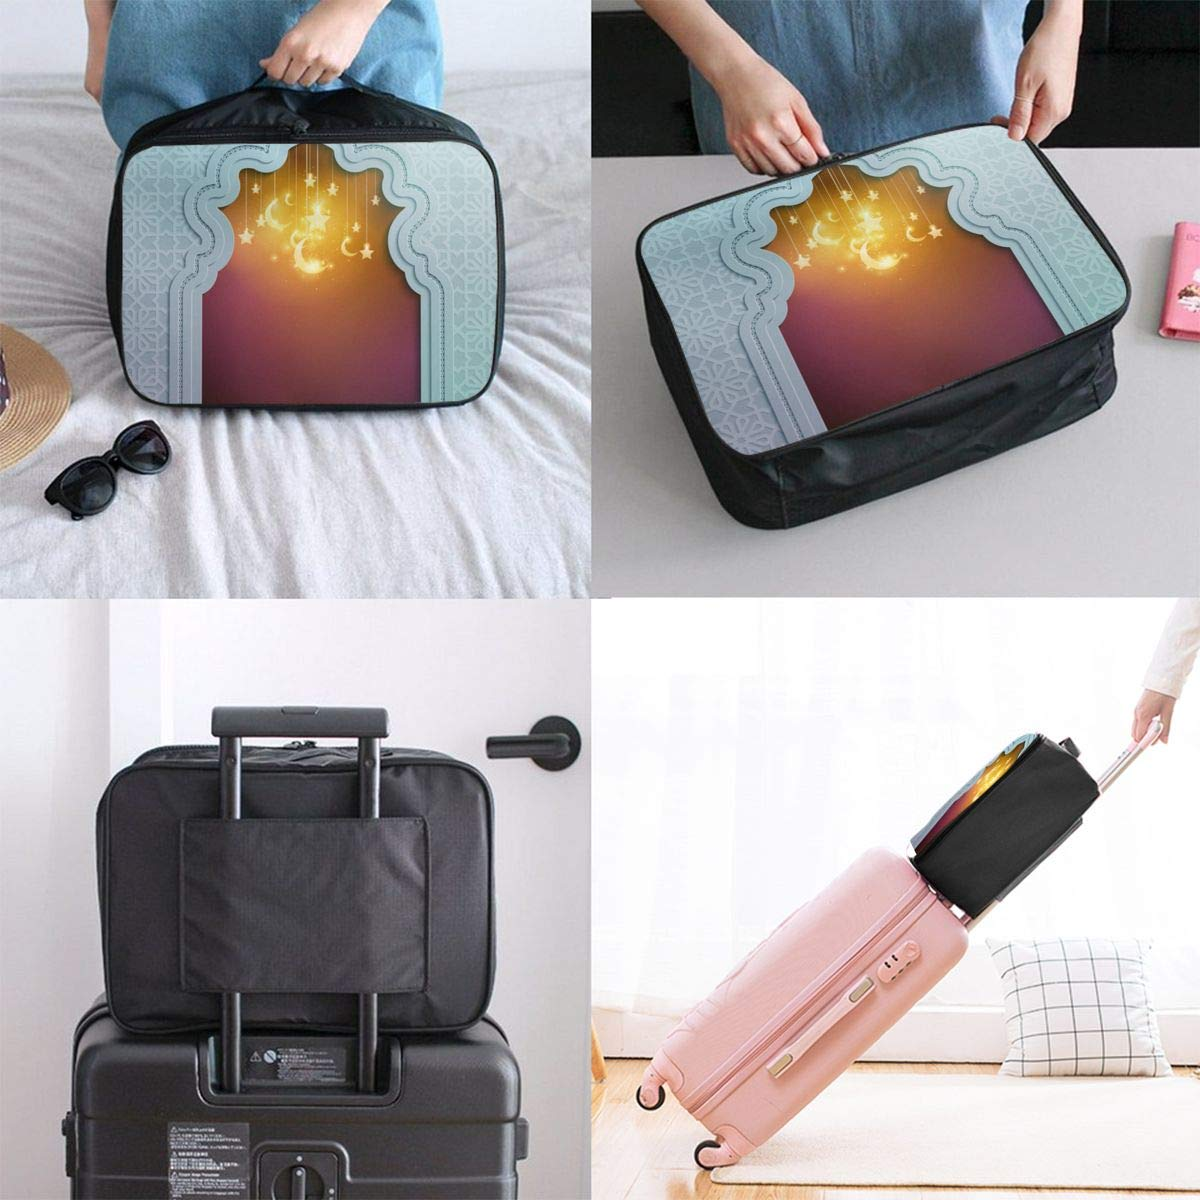 The Arab League is The Same As The Dream Canvas Travel Weekender Bag,Fashion Custom Lightweight Large Capacity Portable Luggage Bag,Suitcase Trolley Bag